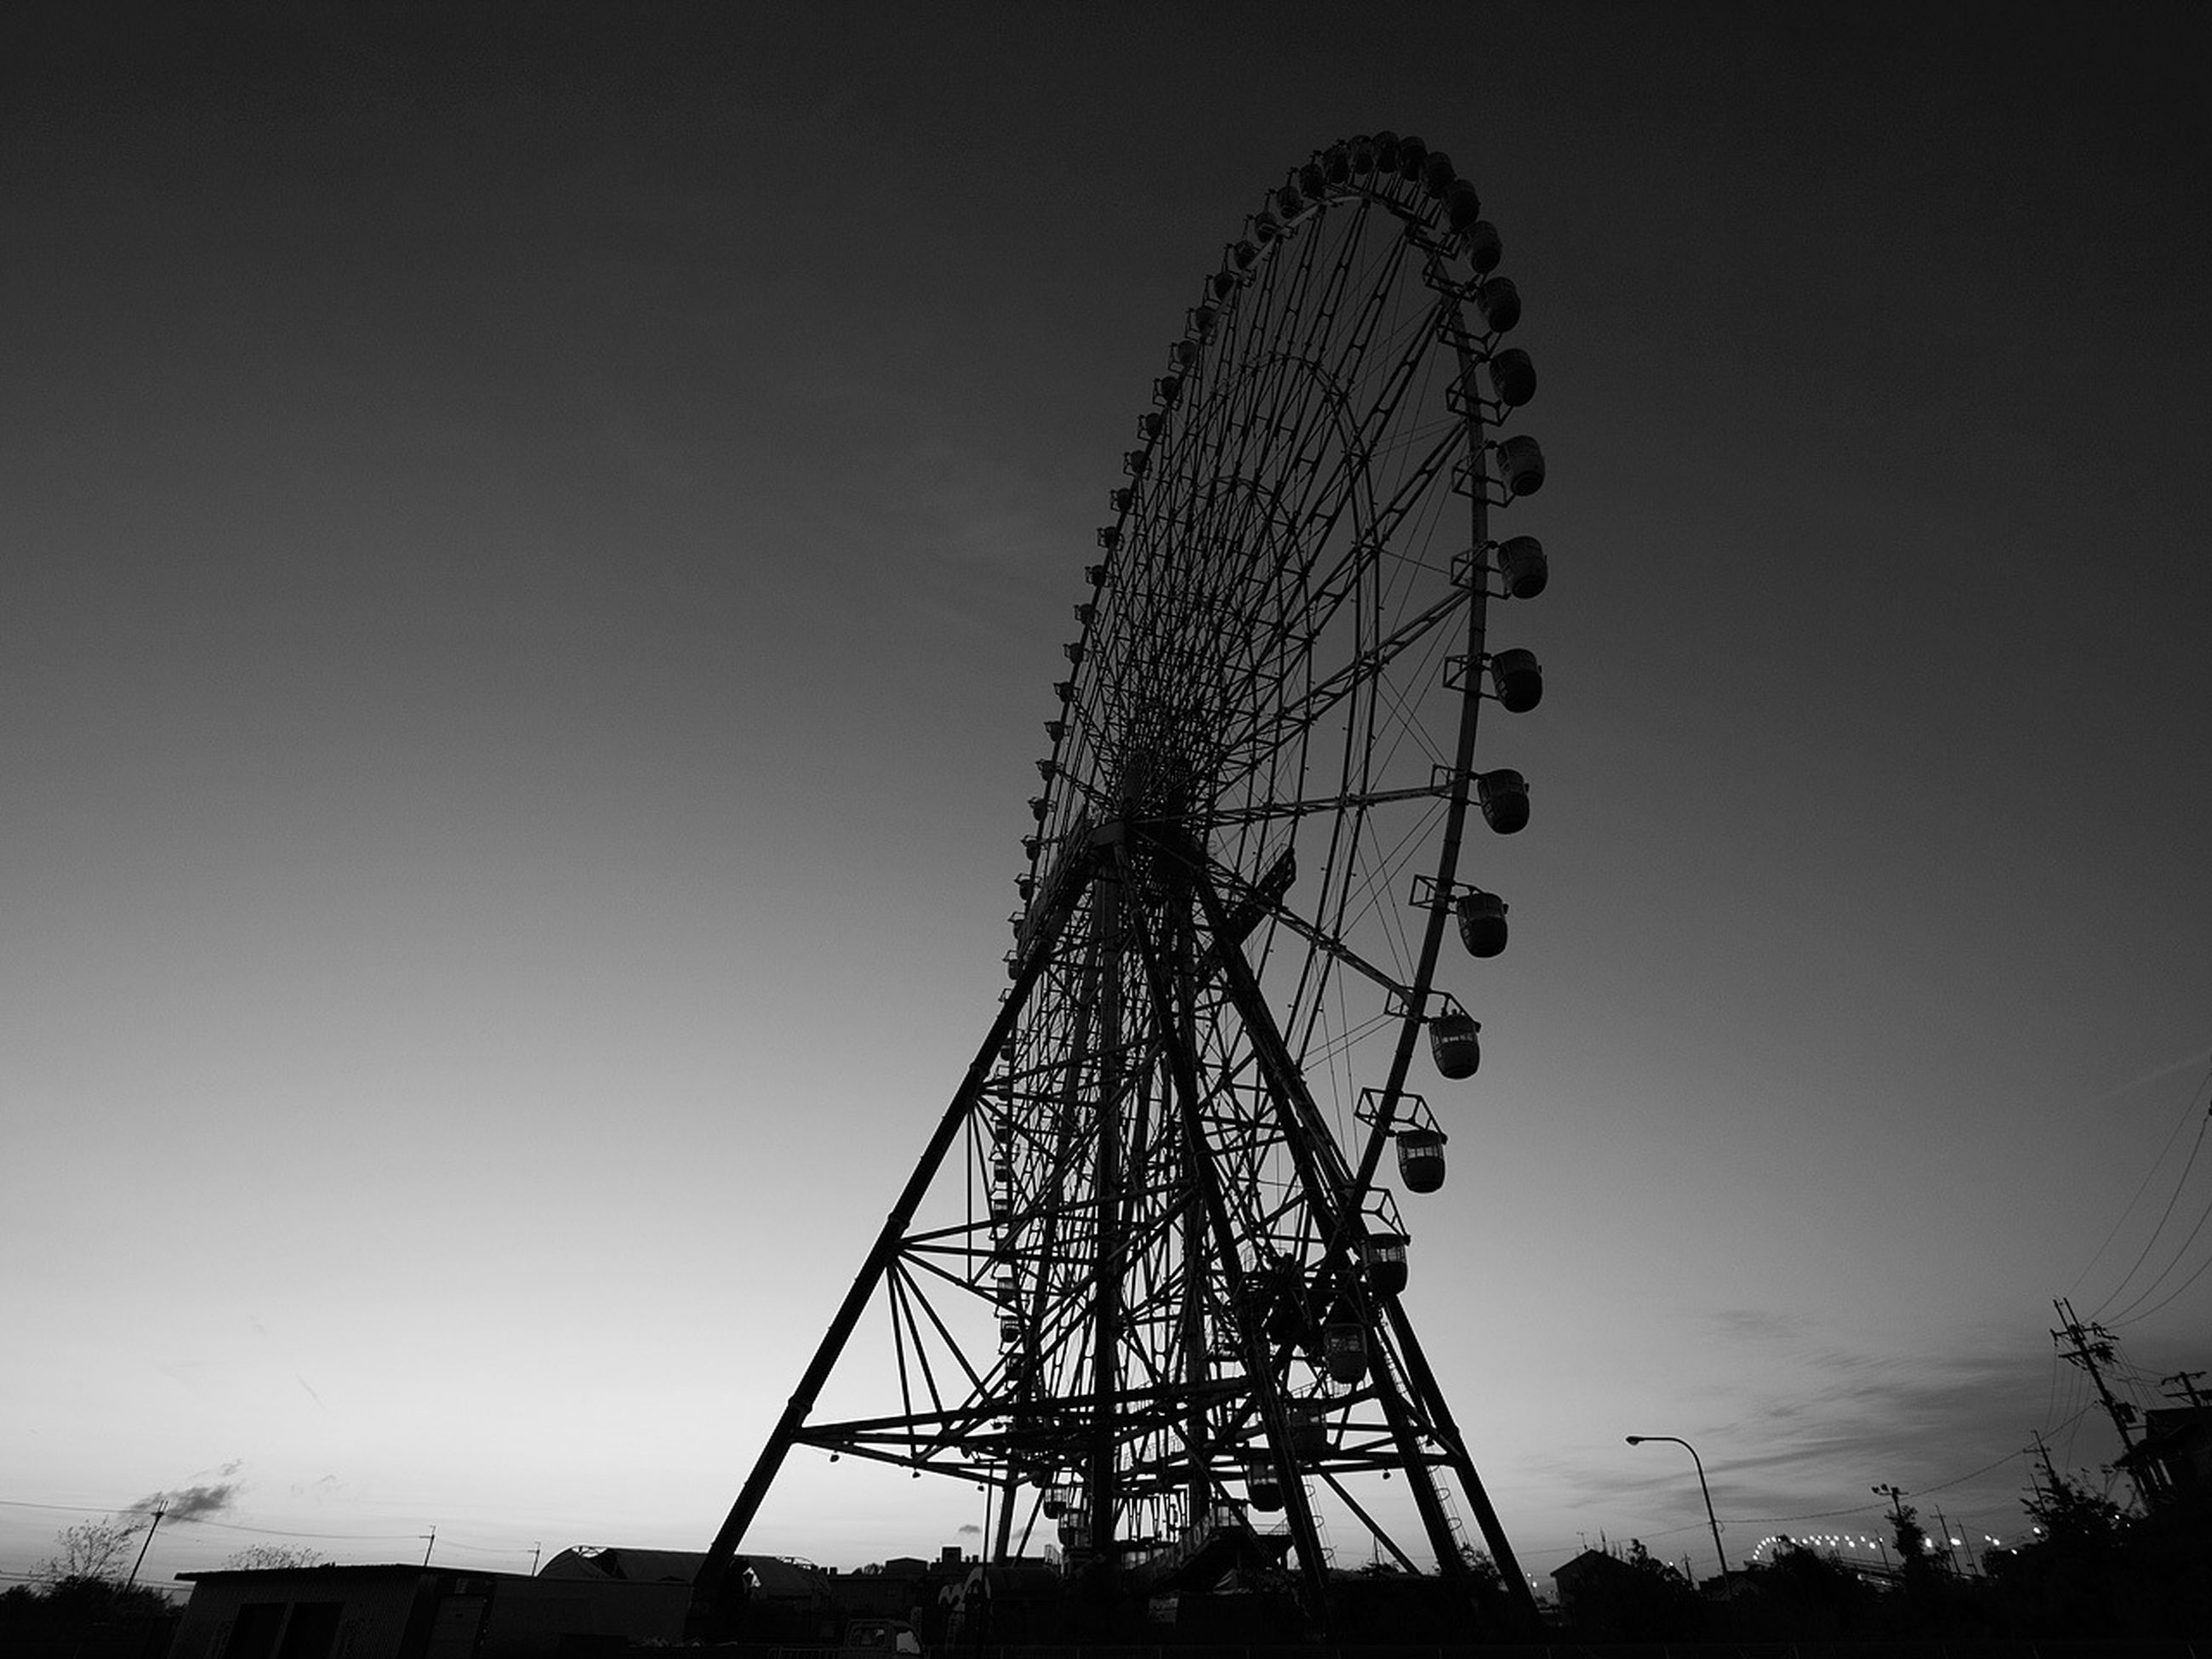 low angle view, ferris wheel, amusement park, amusement park ride, arts culture and entertainment, clear sky, built structure, sky, silhouette, architecture, tall - high, outdoors, dusk, copy space, fun, large, tower, enjoyment, big wheel, no people